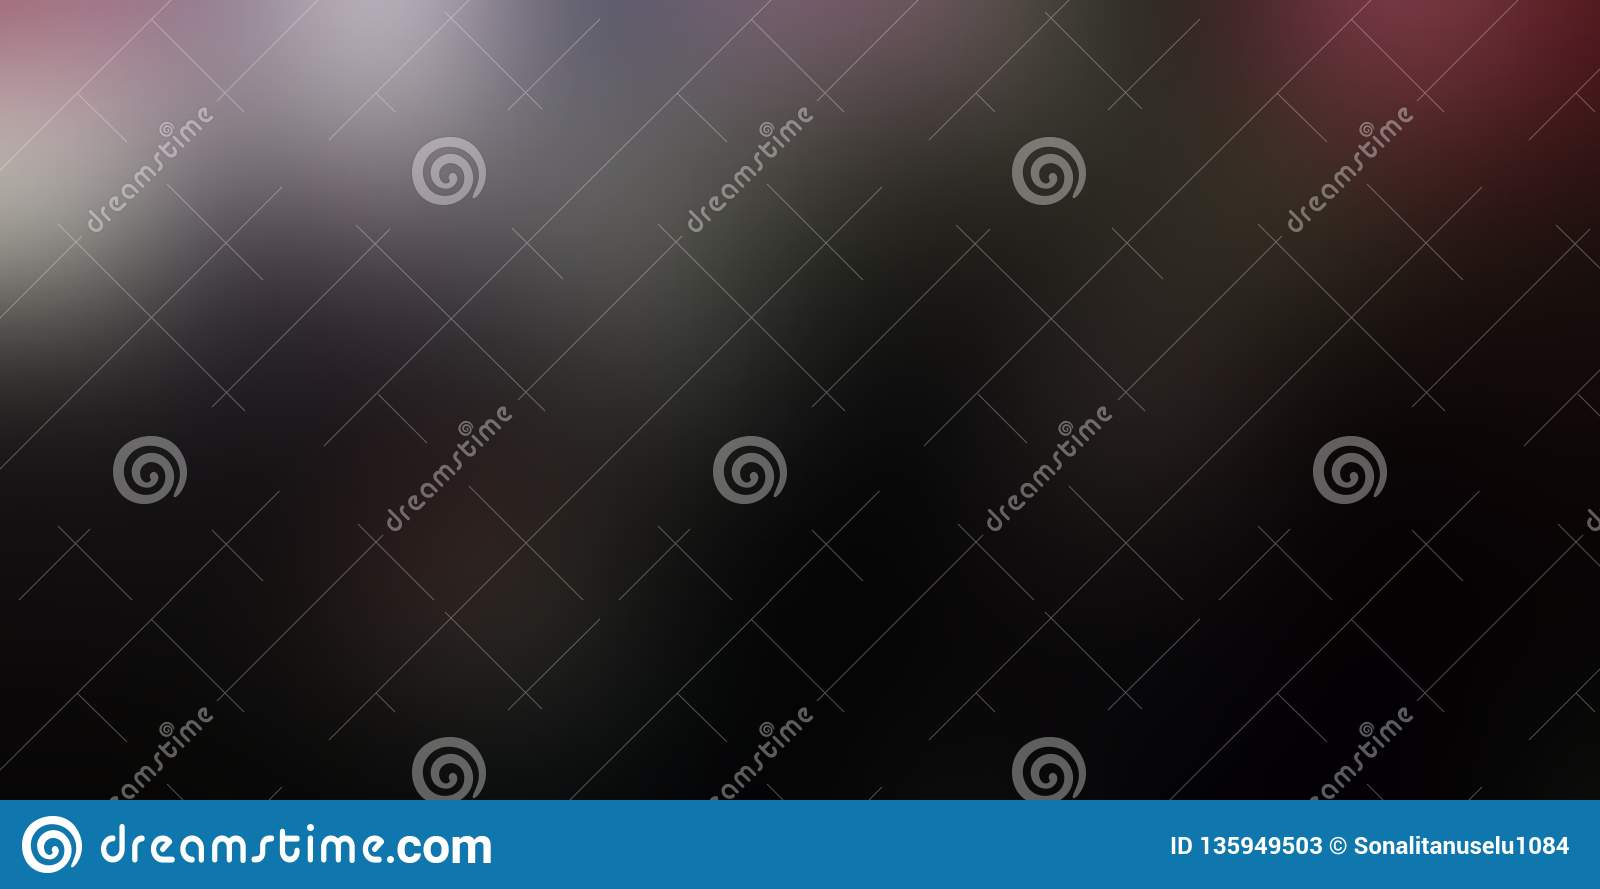 Abstract vector blur background wallpaper.